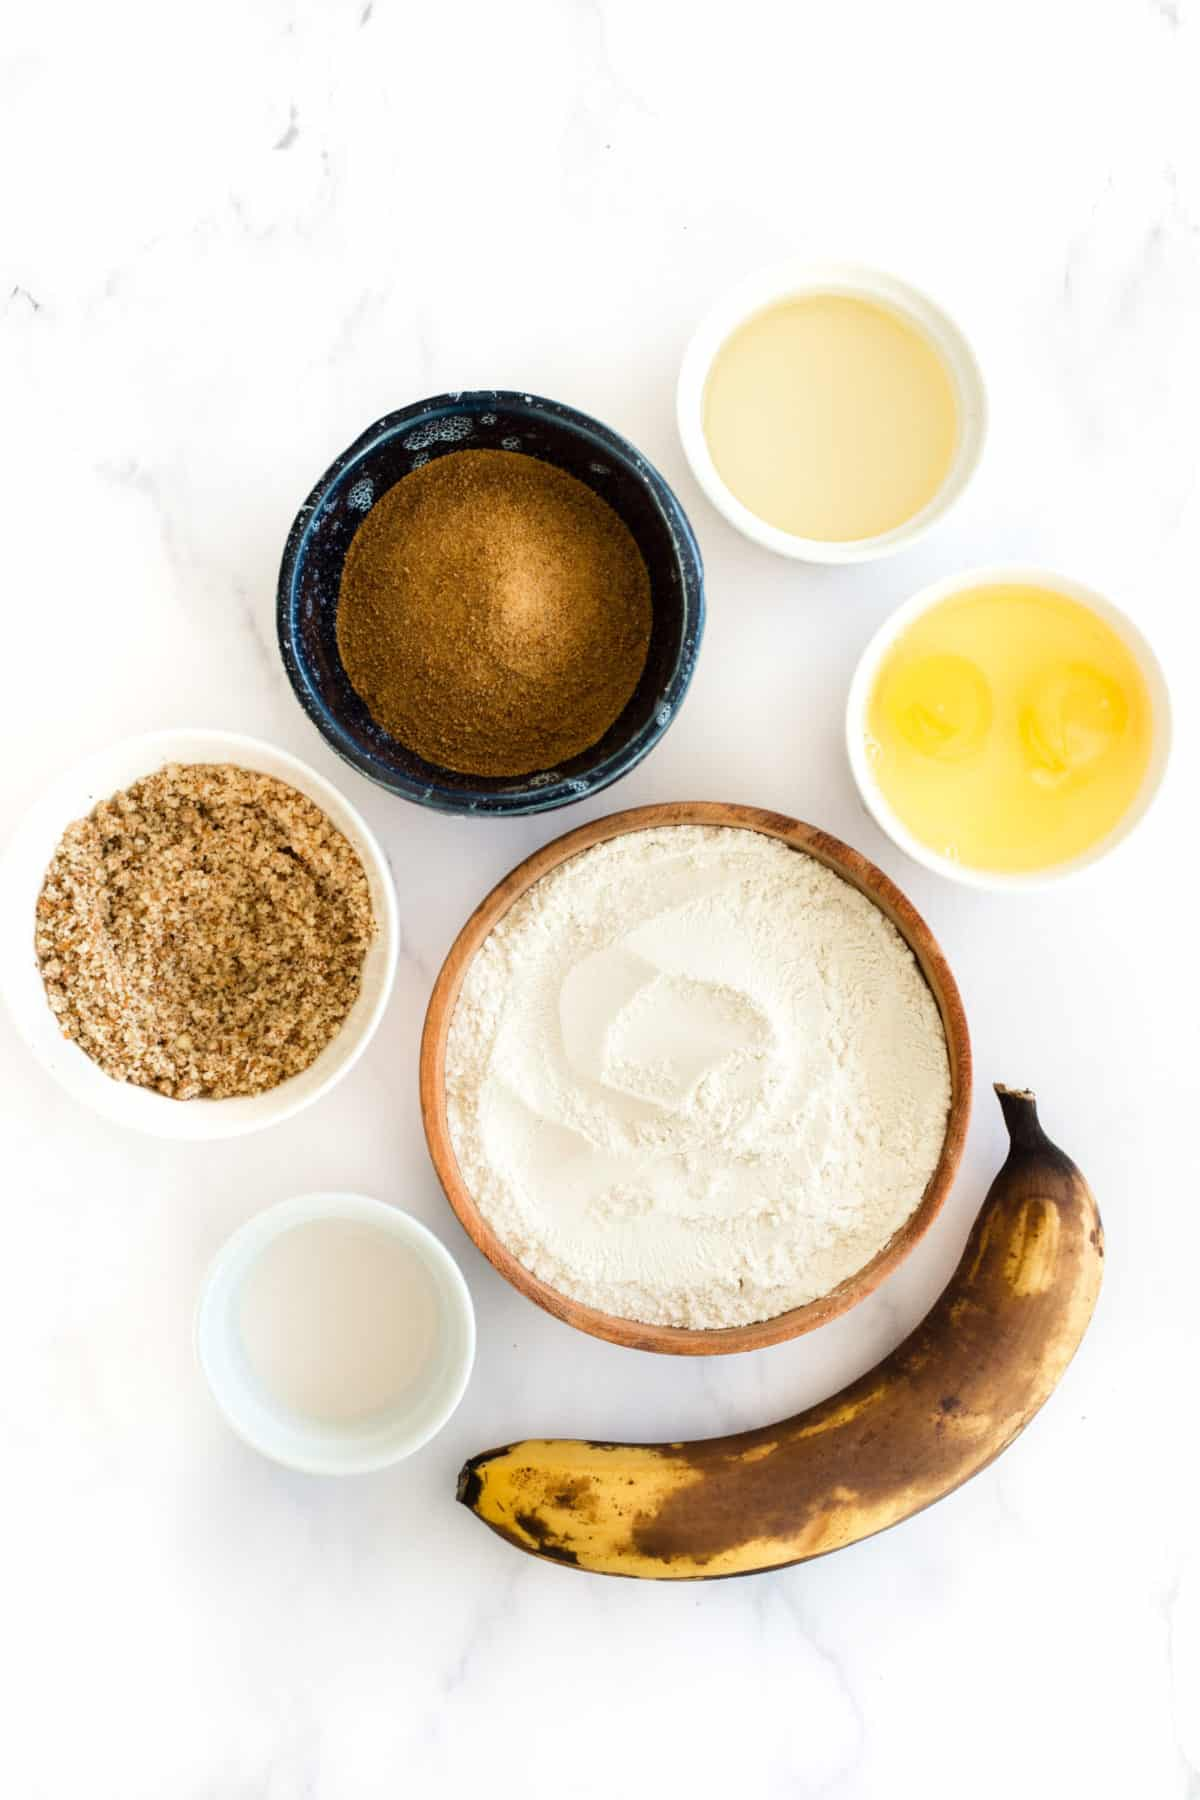 The Best Gluten-Free Banana Bread Ingredients